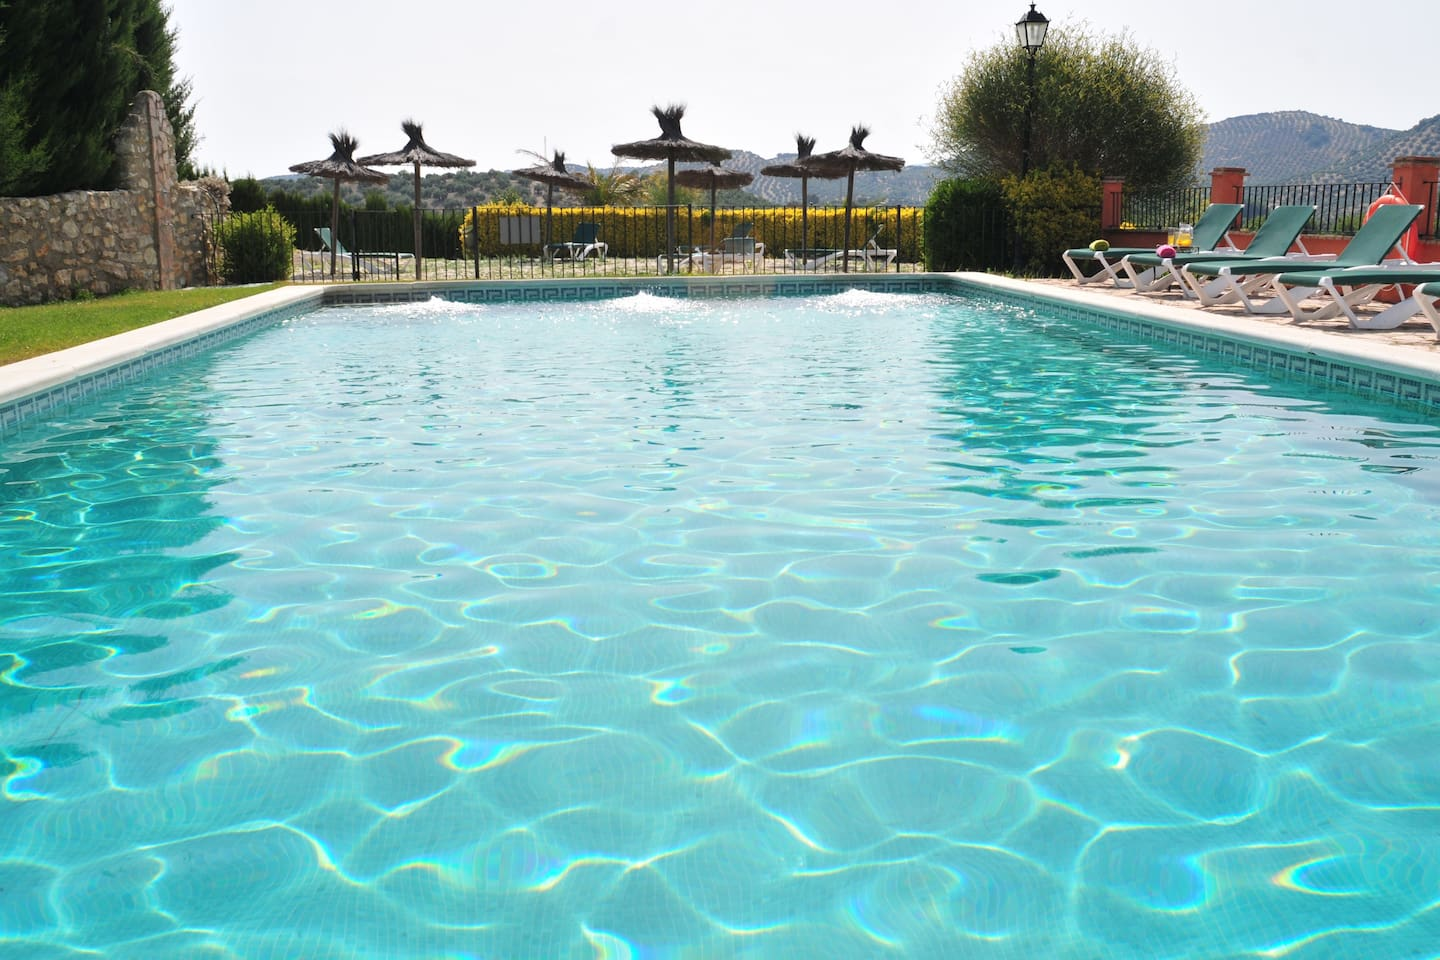 Cortijo La Presa offers self-catering accommodation with swimming pool